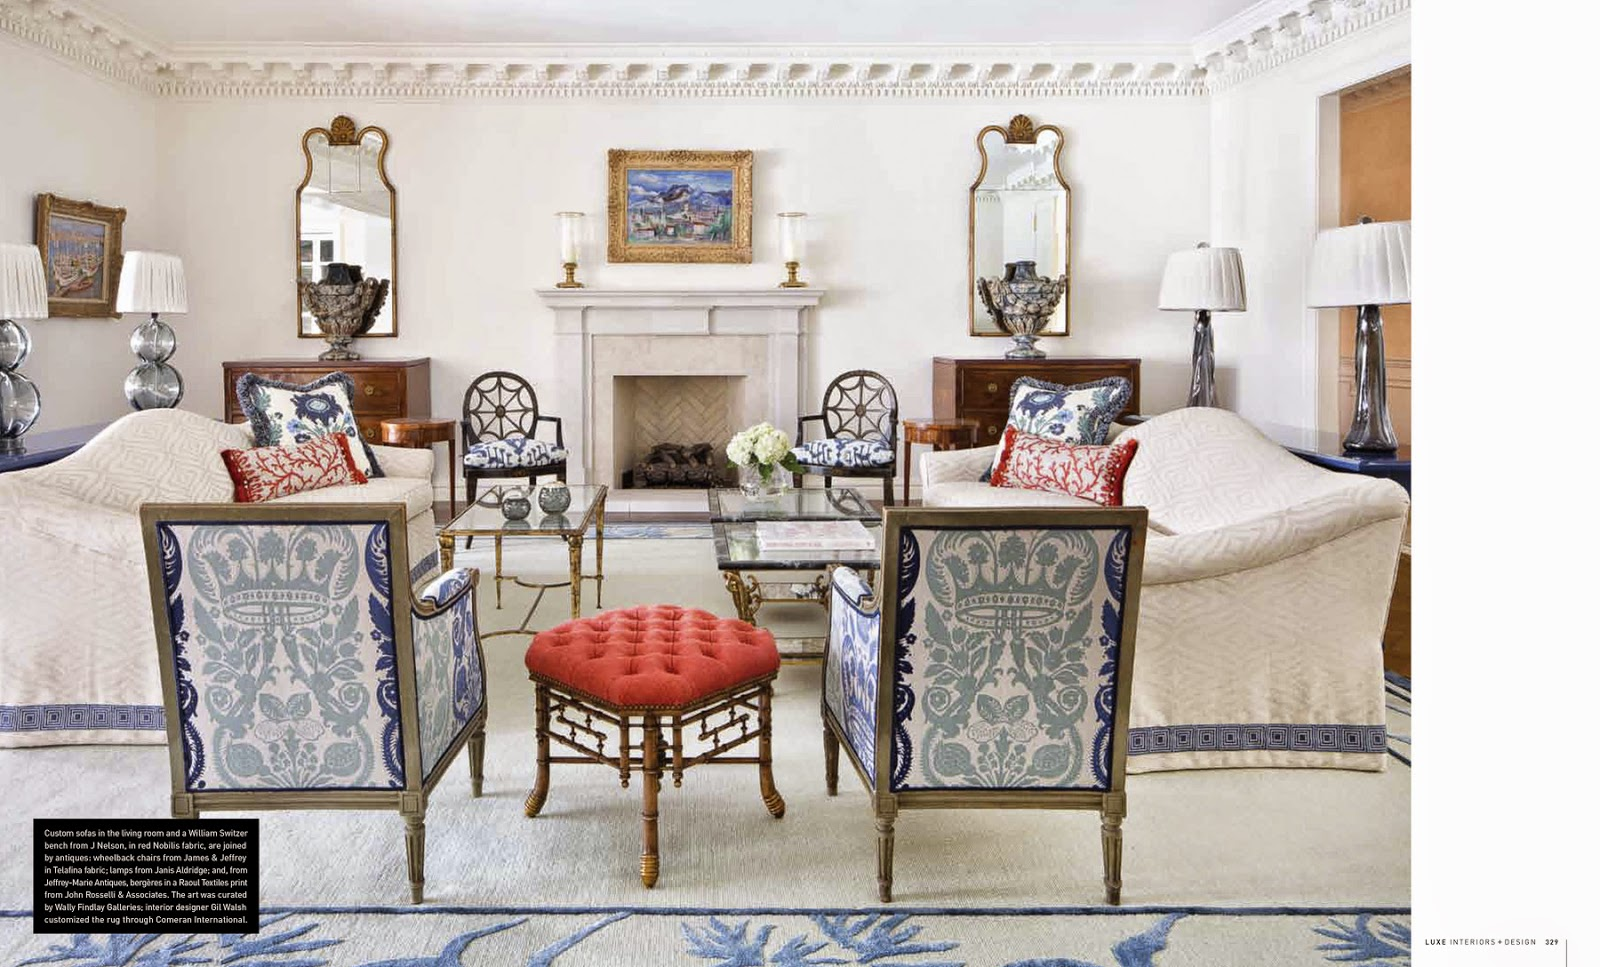 Check Out My Photos In Luxe Magazineu0027s Winter 2015 (Palm Beach) Issue,  P.324 337. I Photographed This Classic Palm Beach House. Interior Design By  Gil Walsh ...